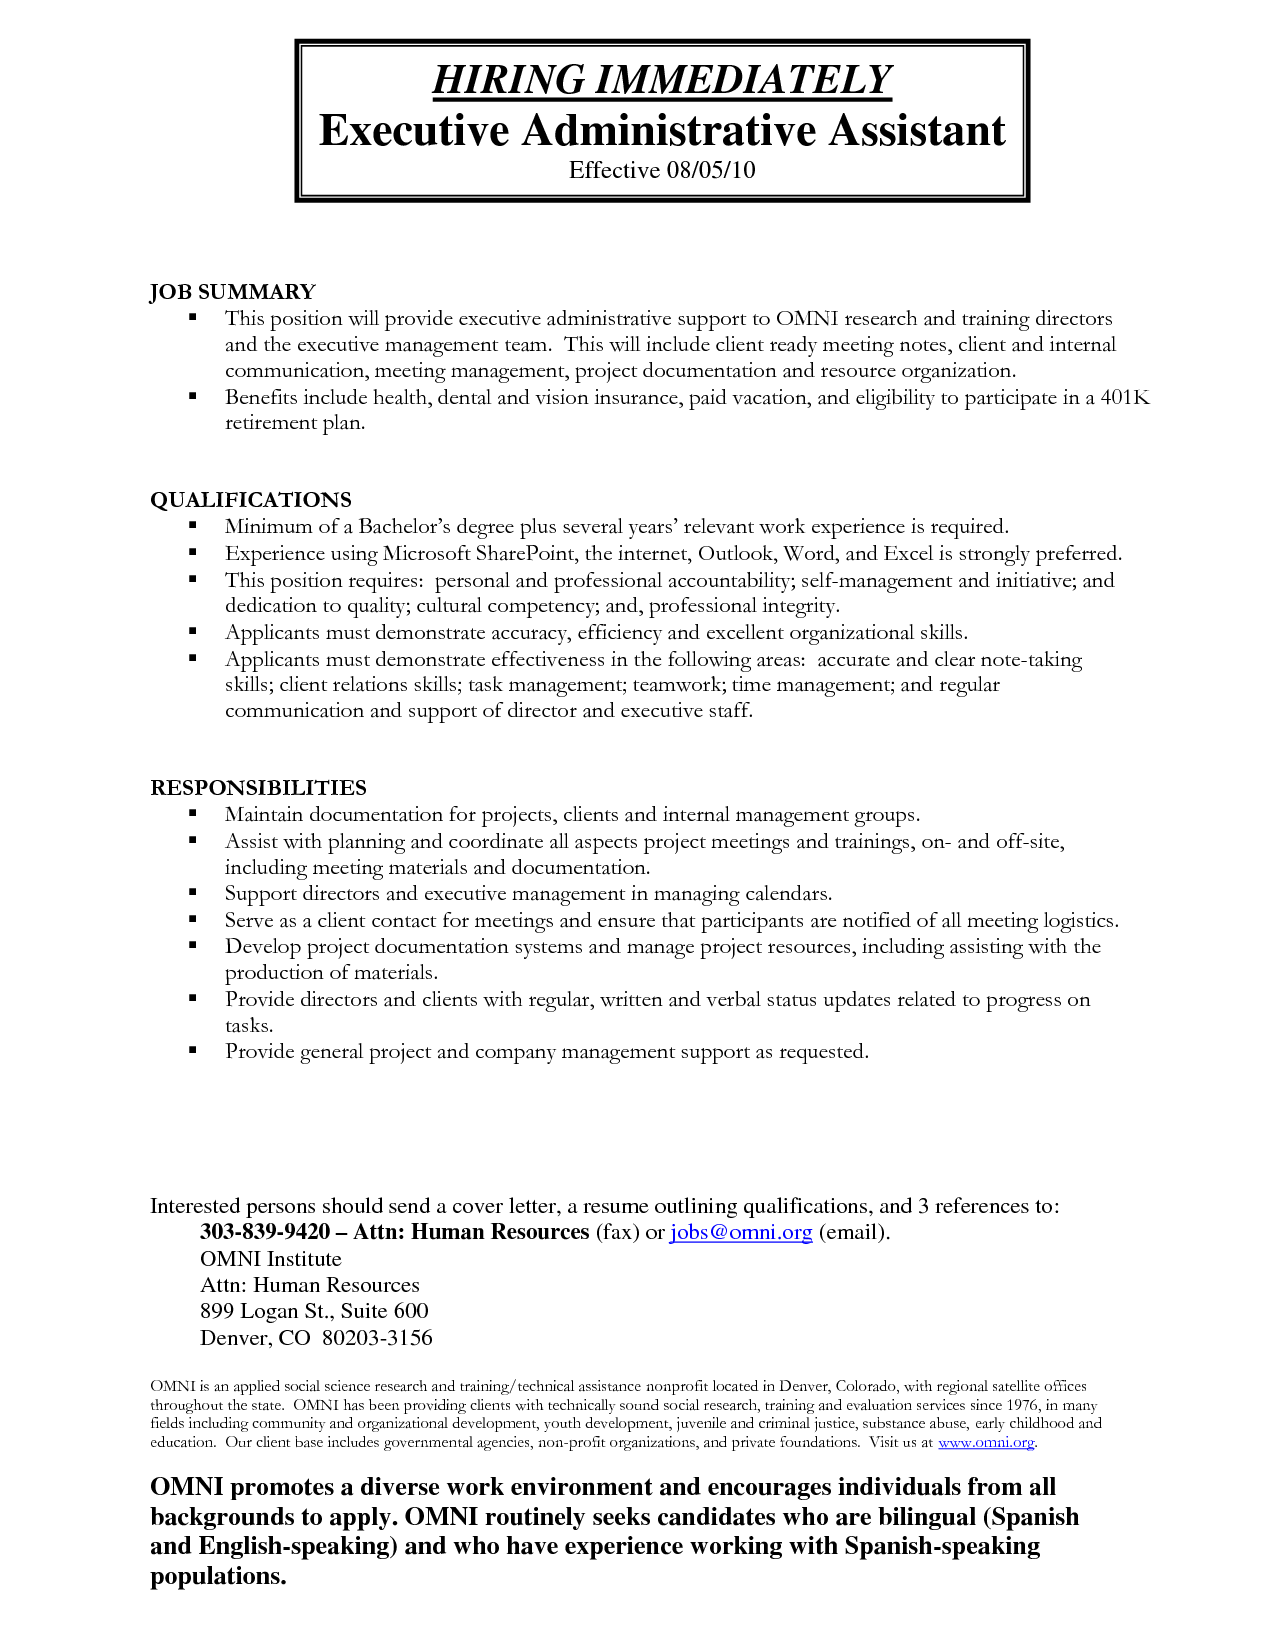 administrative assistant duties construction company sample resume - Administrative Assistant Example Resume